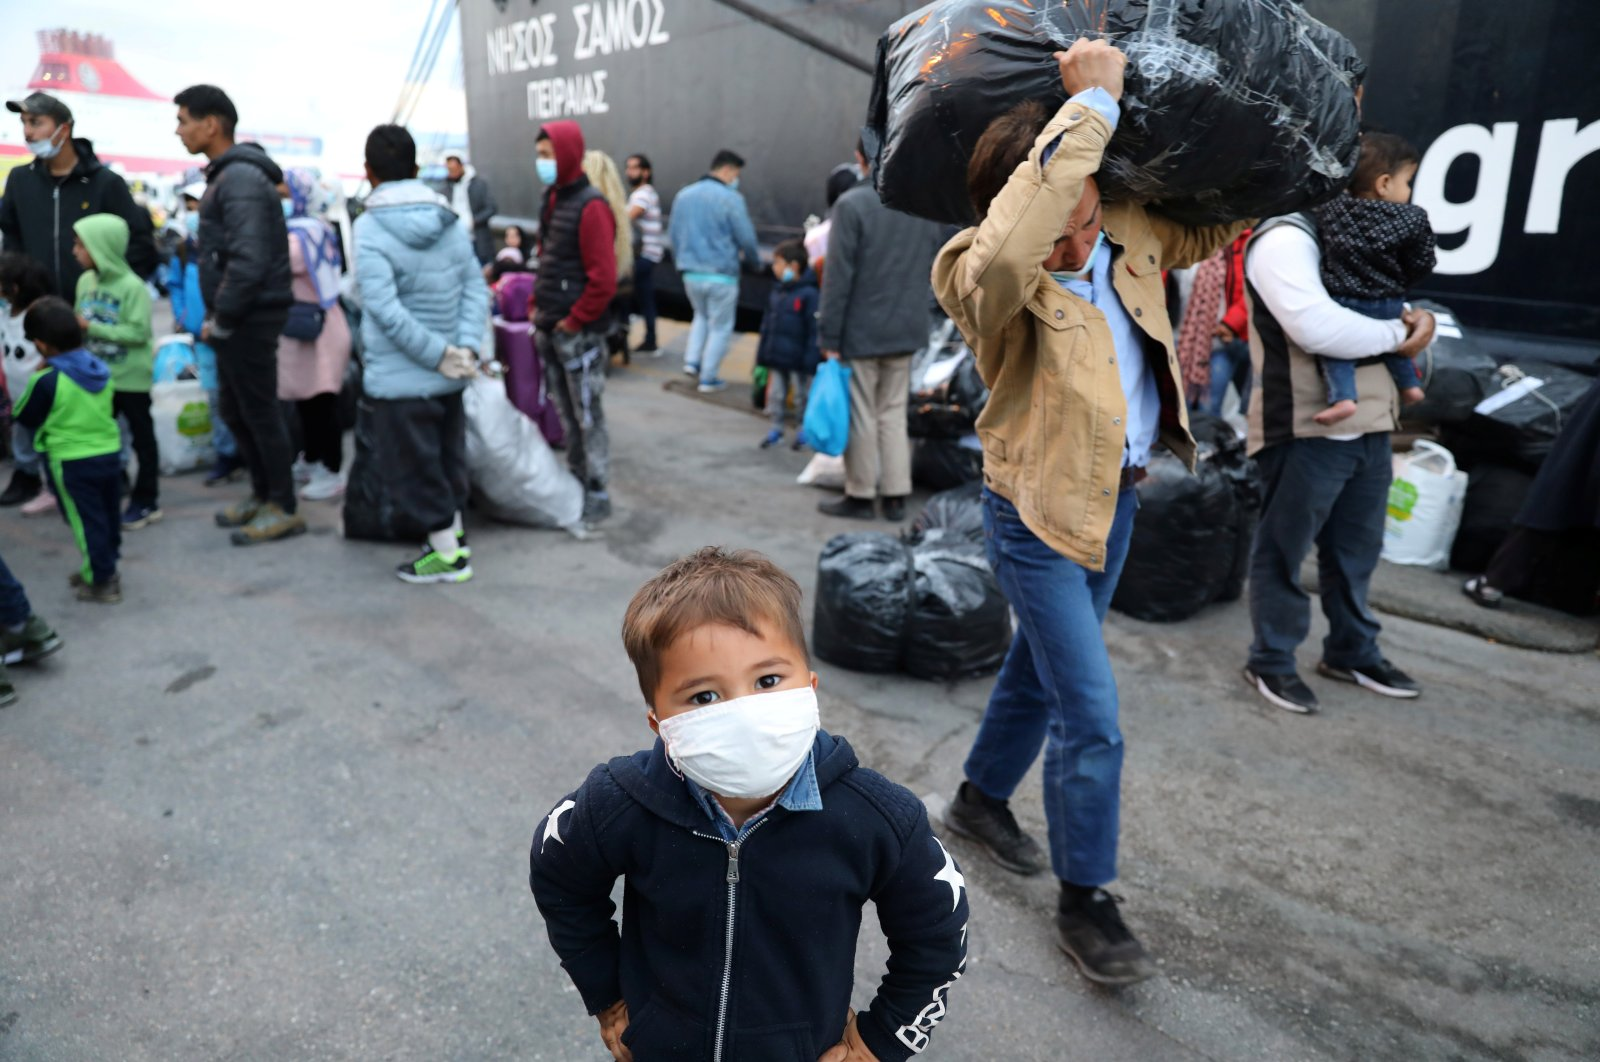 A migrant boy from the Moria camp in Lesbos waits to board a bus at Piraeus port in Athens following the coronavirus disease (COVID-19) outbreak, Greece, May 4, 2020. (Reuters Photo)